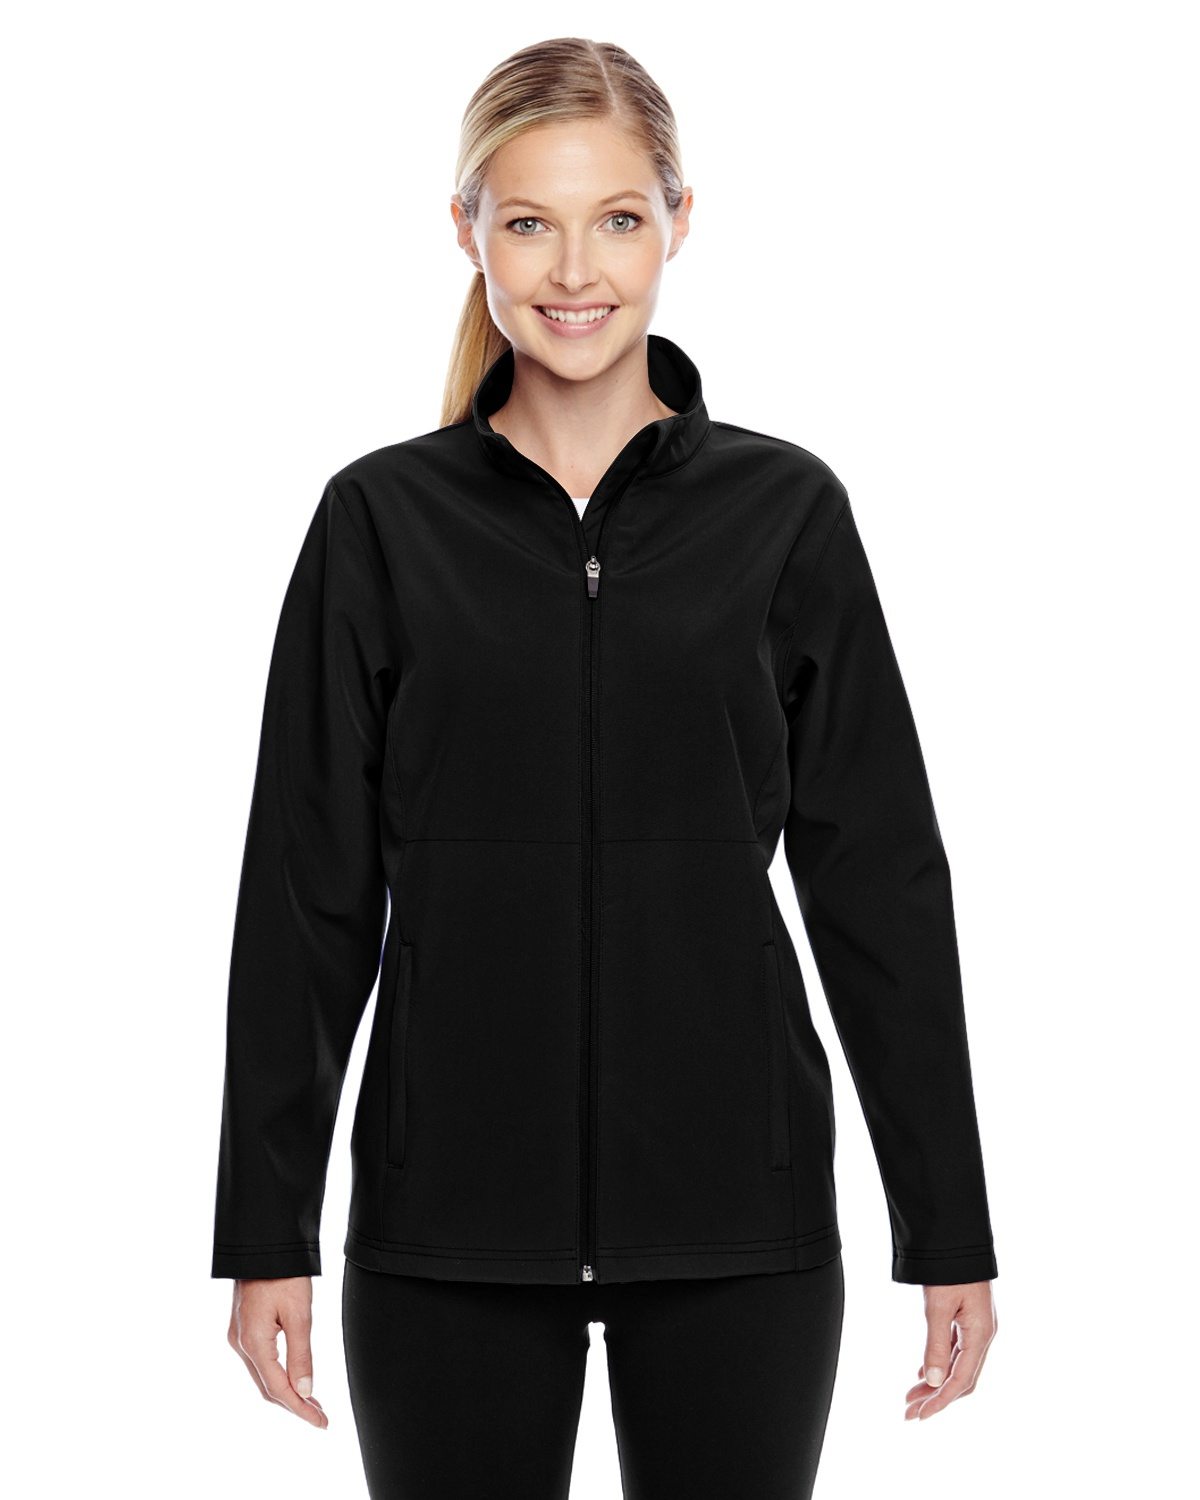 'Team 365 TT80W Ladies' Leader Soft Shell Jacket'